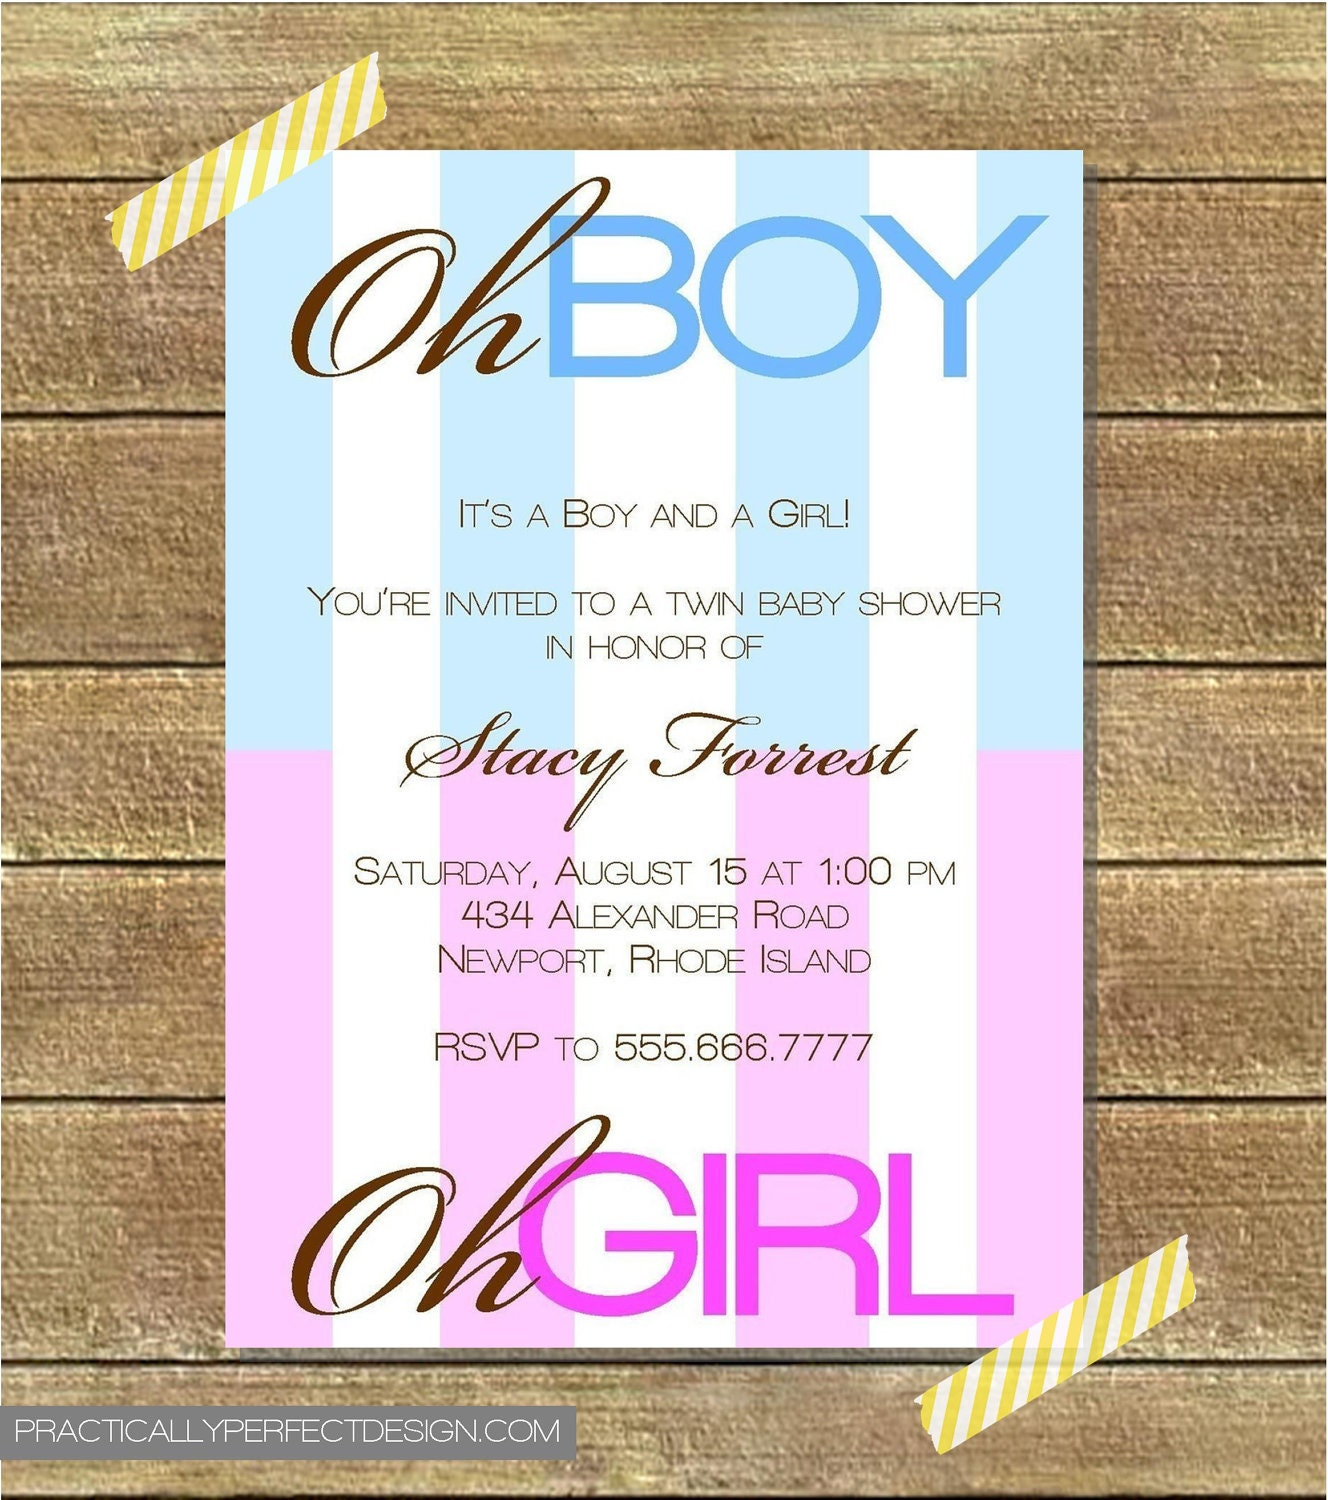 Baby Shower Twins Boy and Girl 1328 x 1500